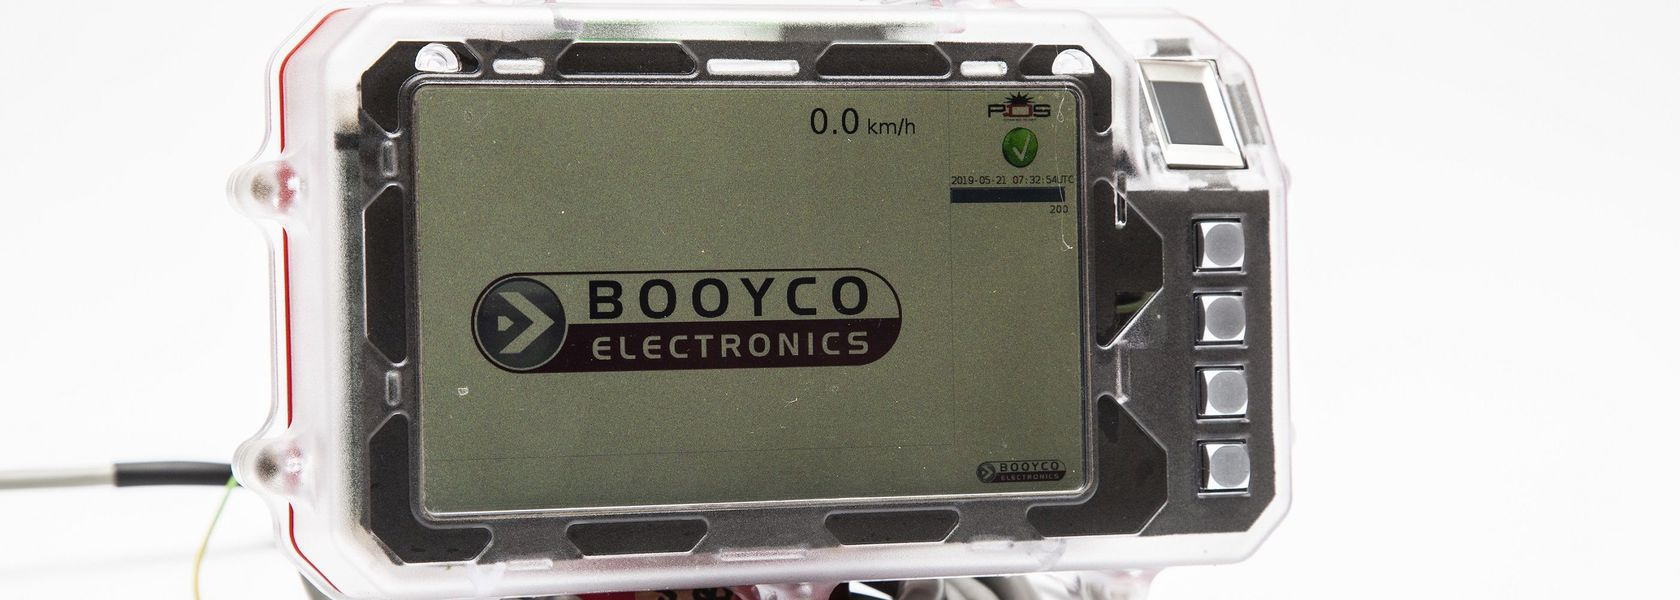 Booyco advances PDS safety testing